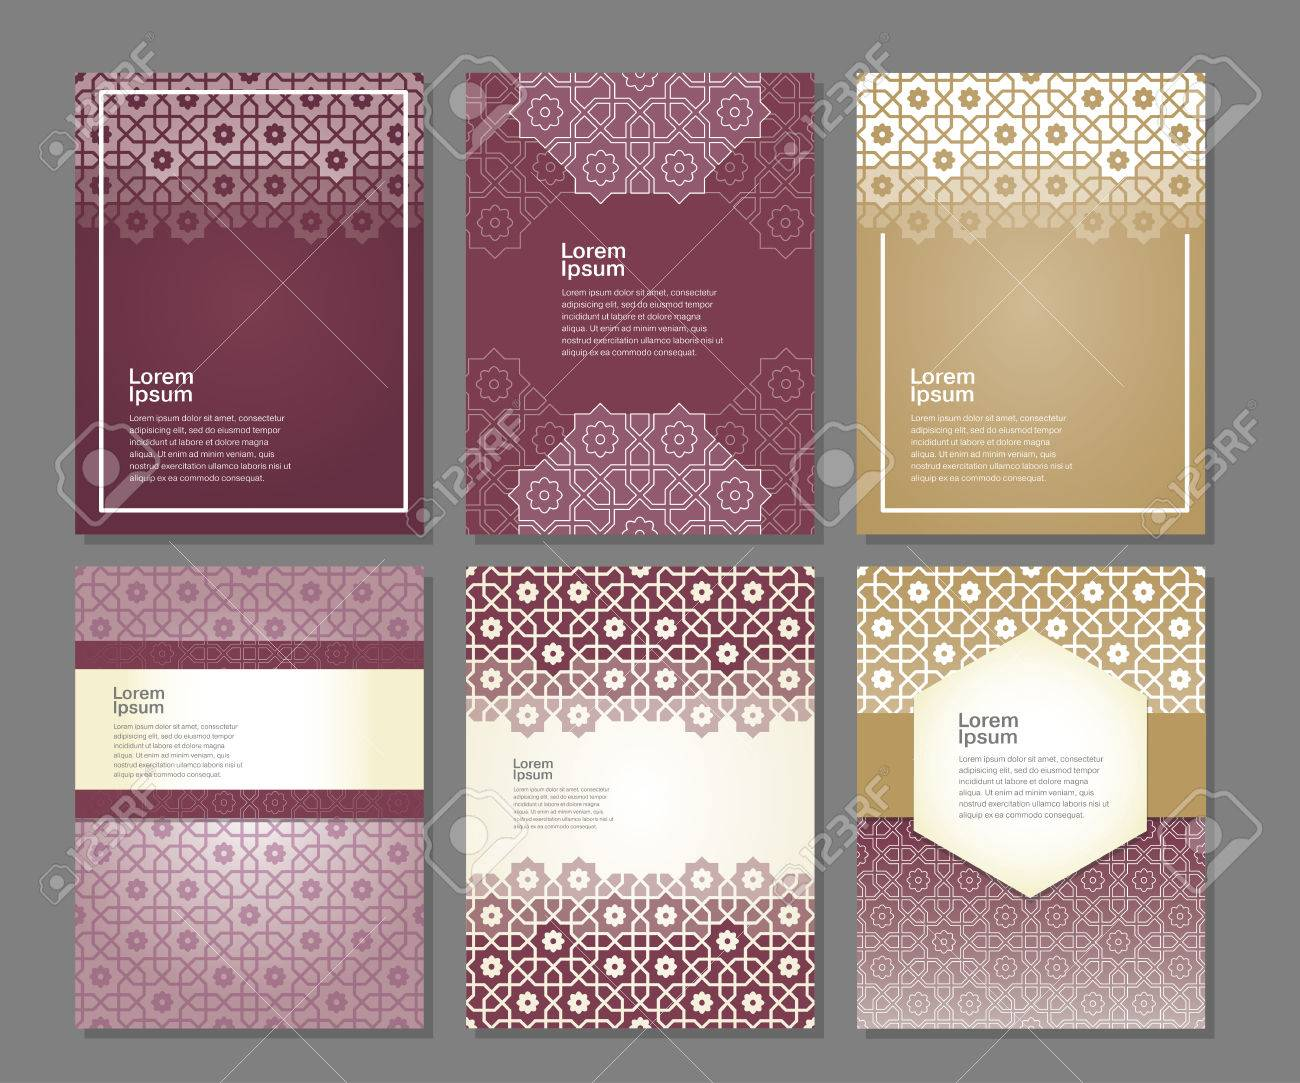 Banners set of templates with arabic ornament, vector illustration - 50913462